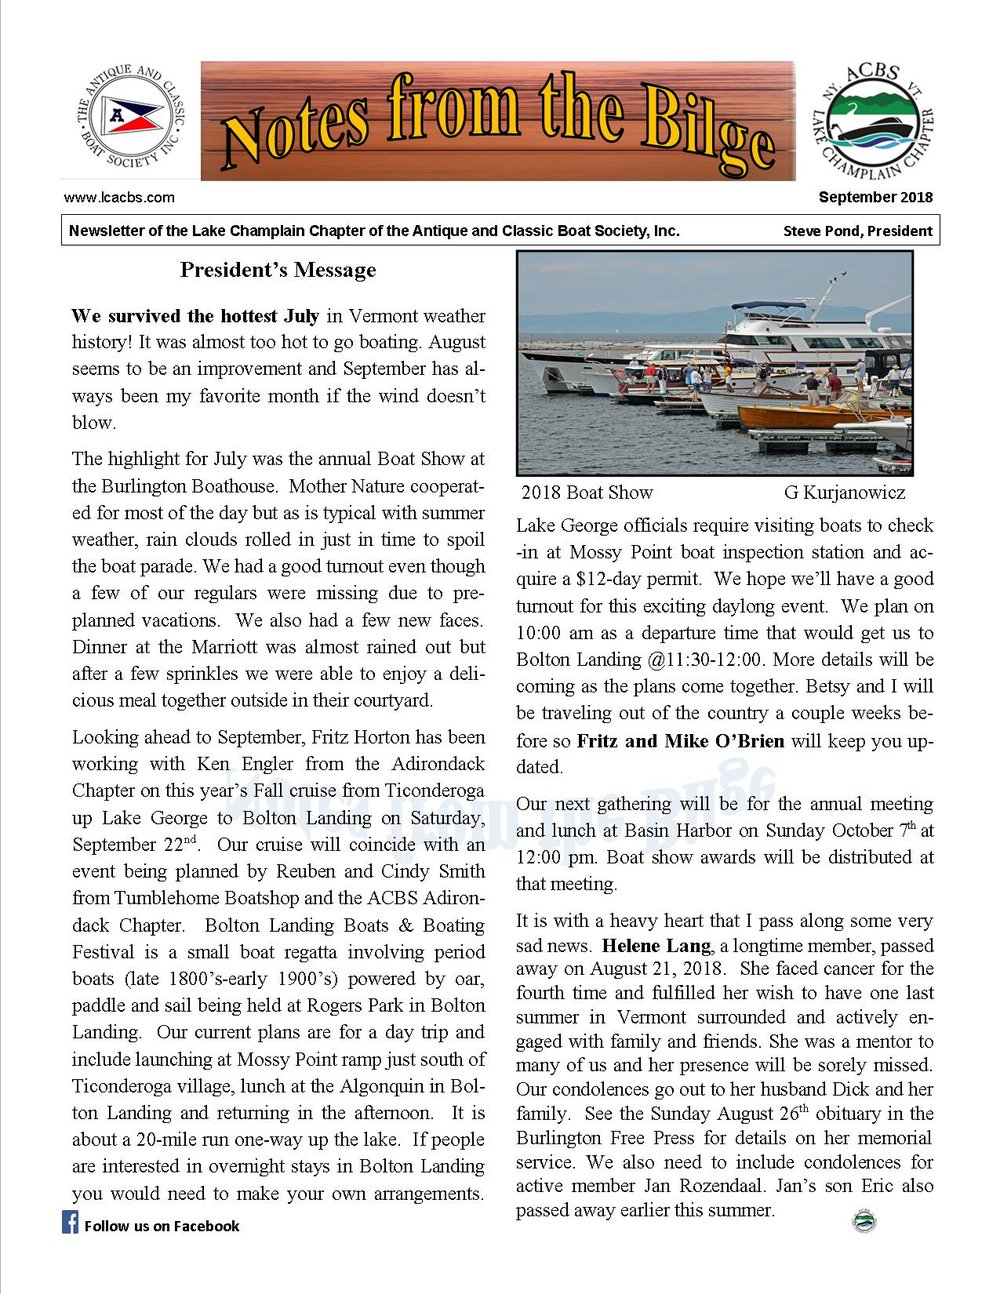 LCACBS Newsletter 9.1.18 Page 1.jpg